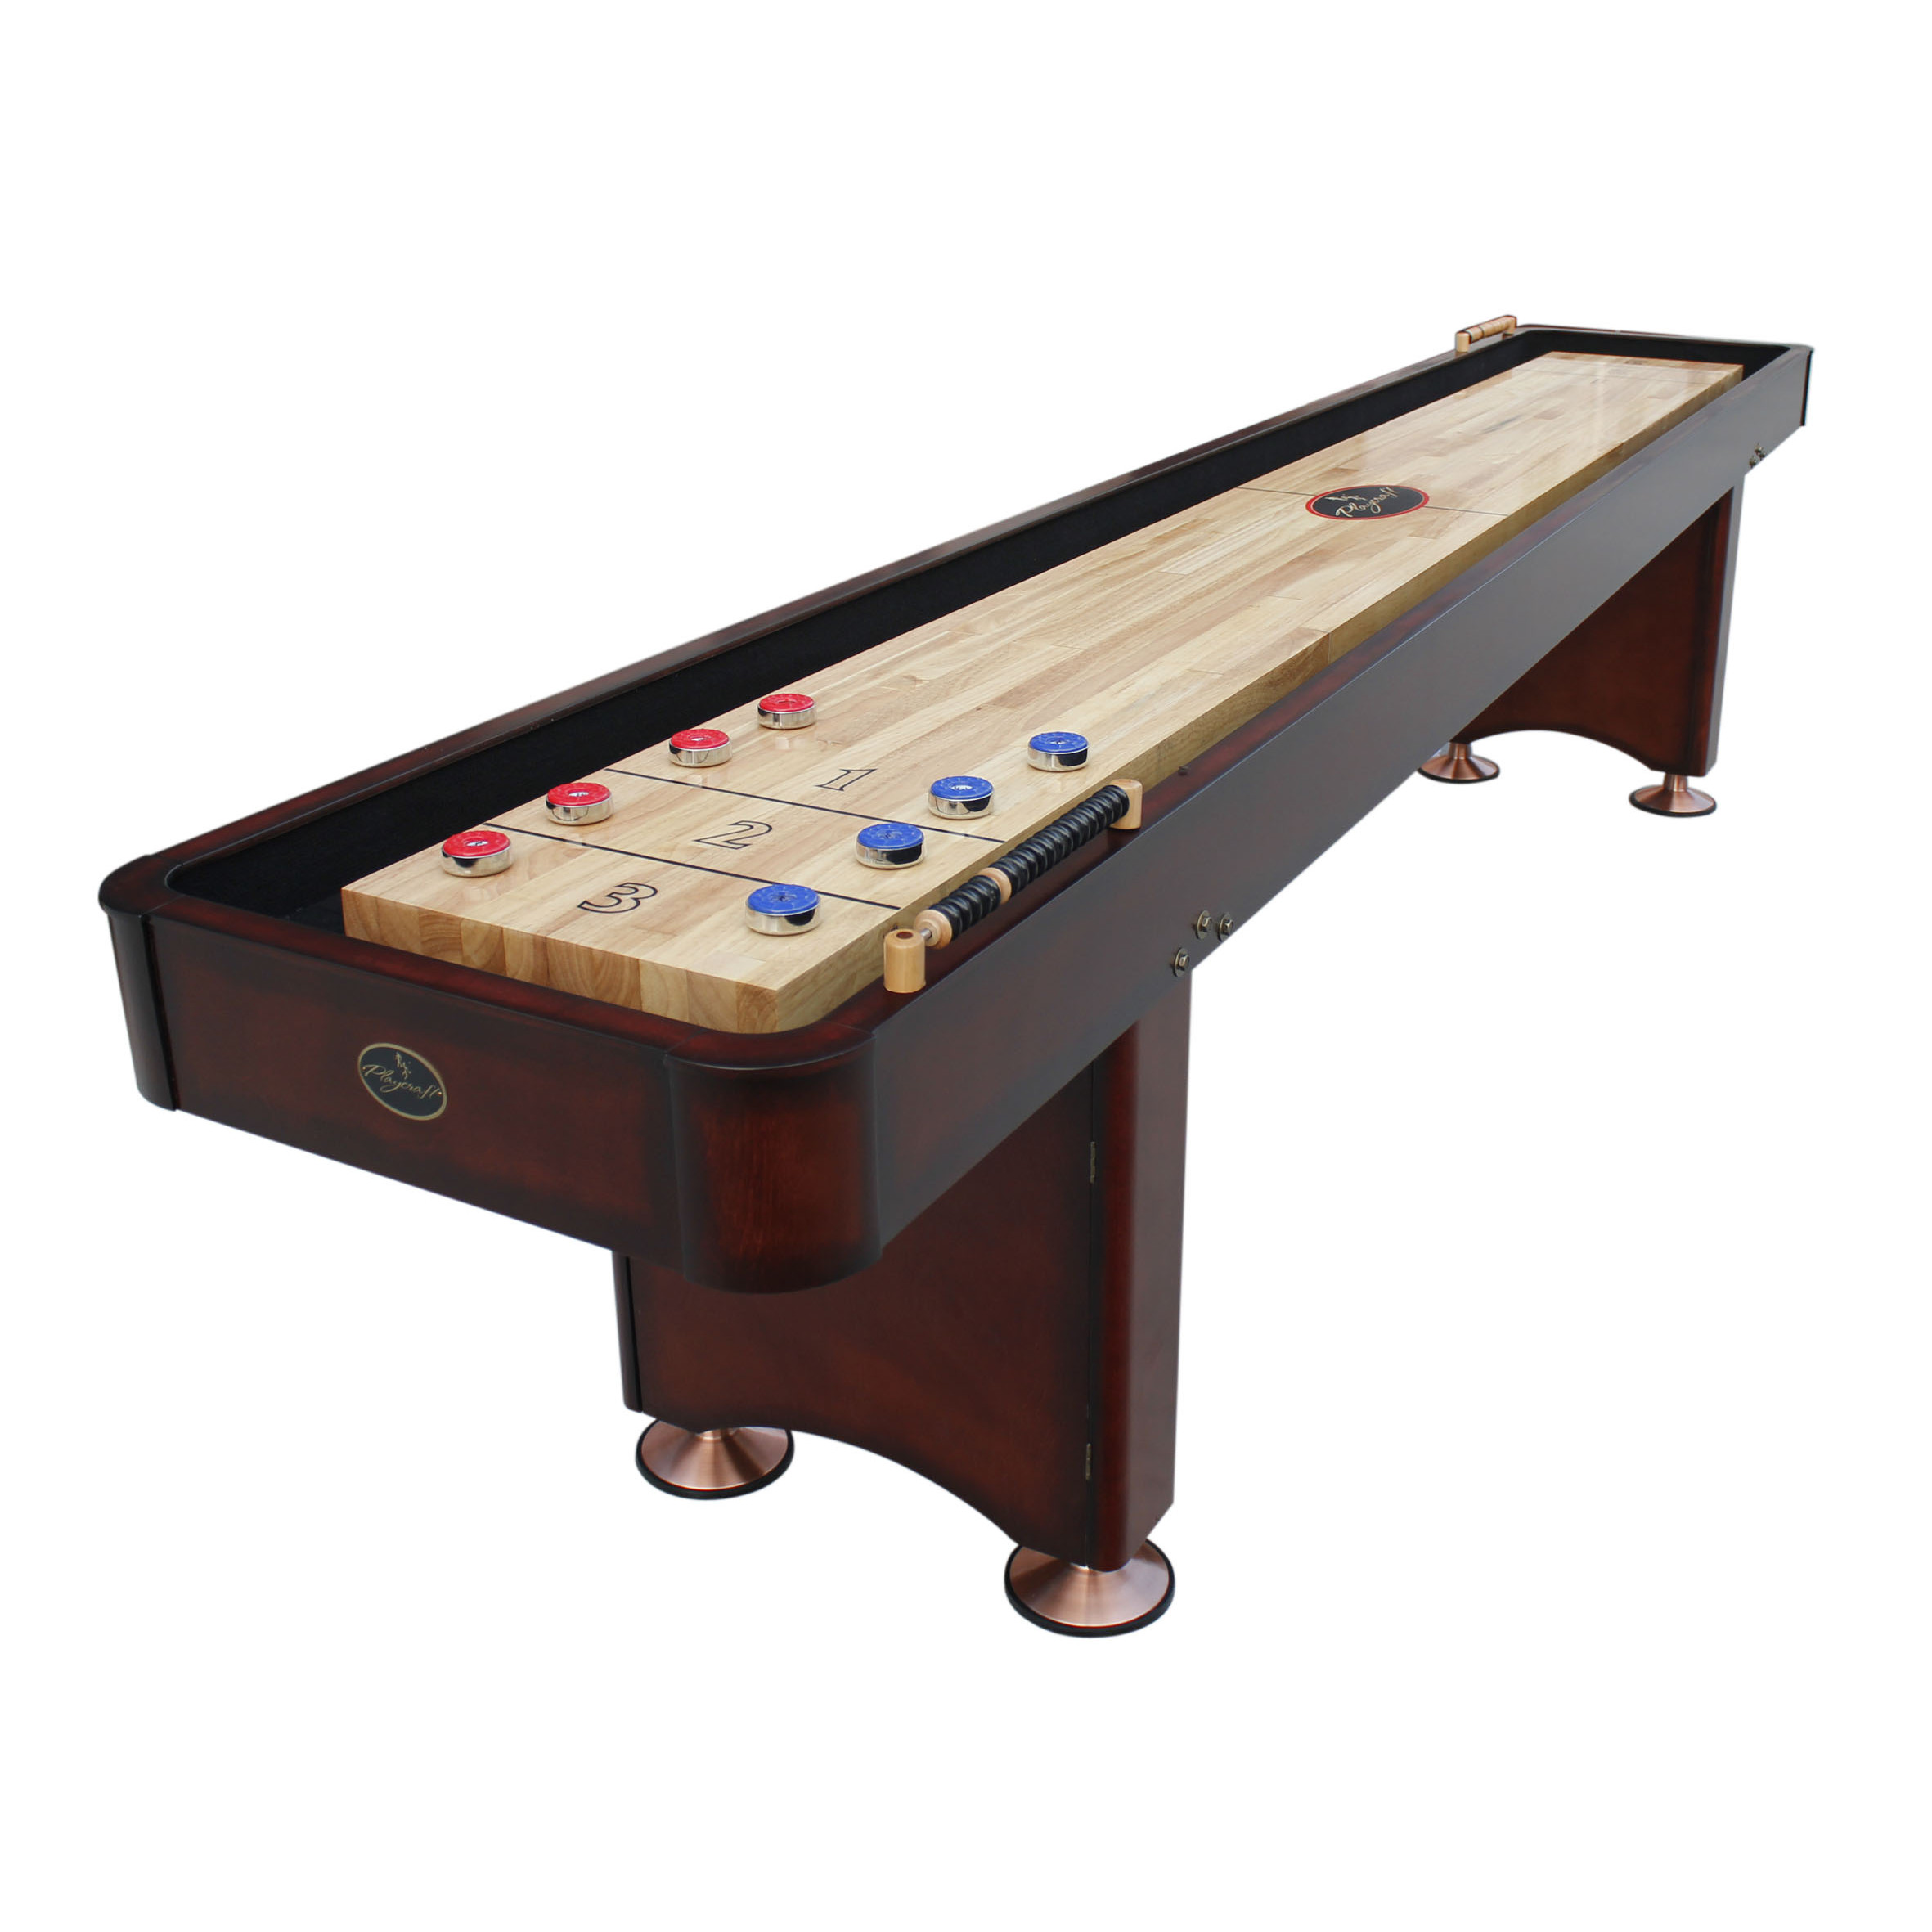 Shuffleboard Table | Modern Shuffleboard Table | Make A Shuffleboard Table